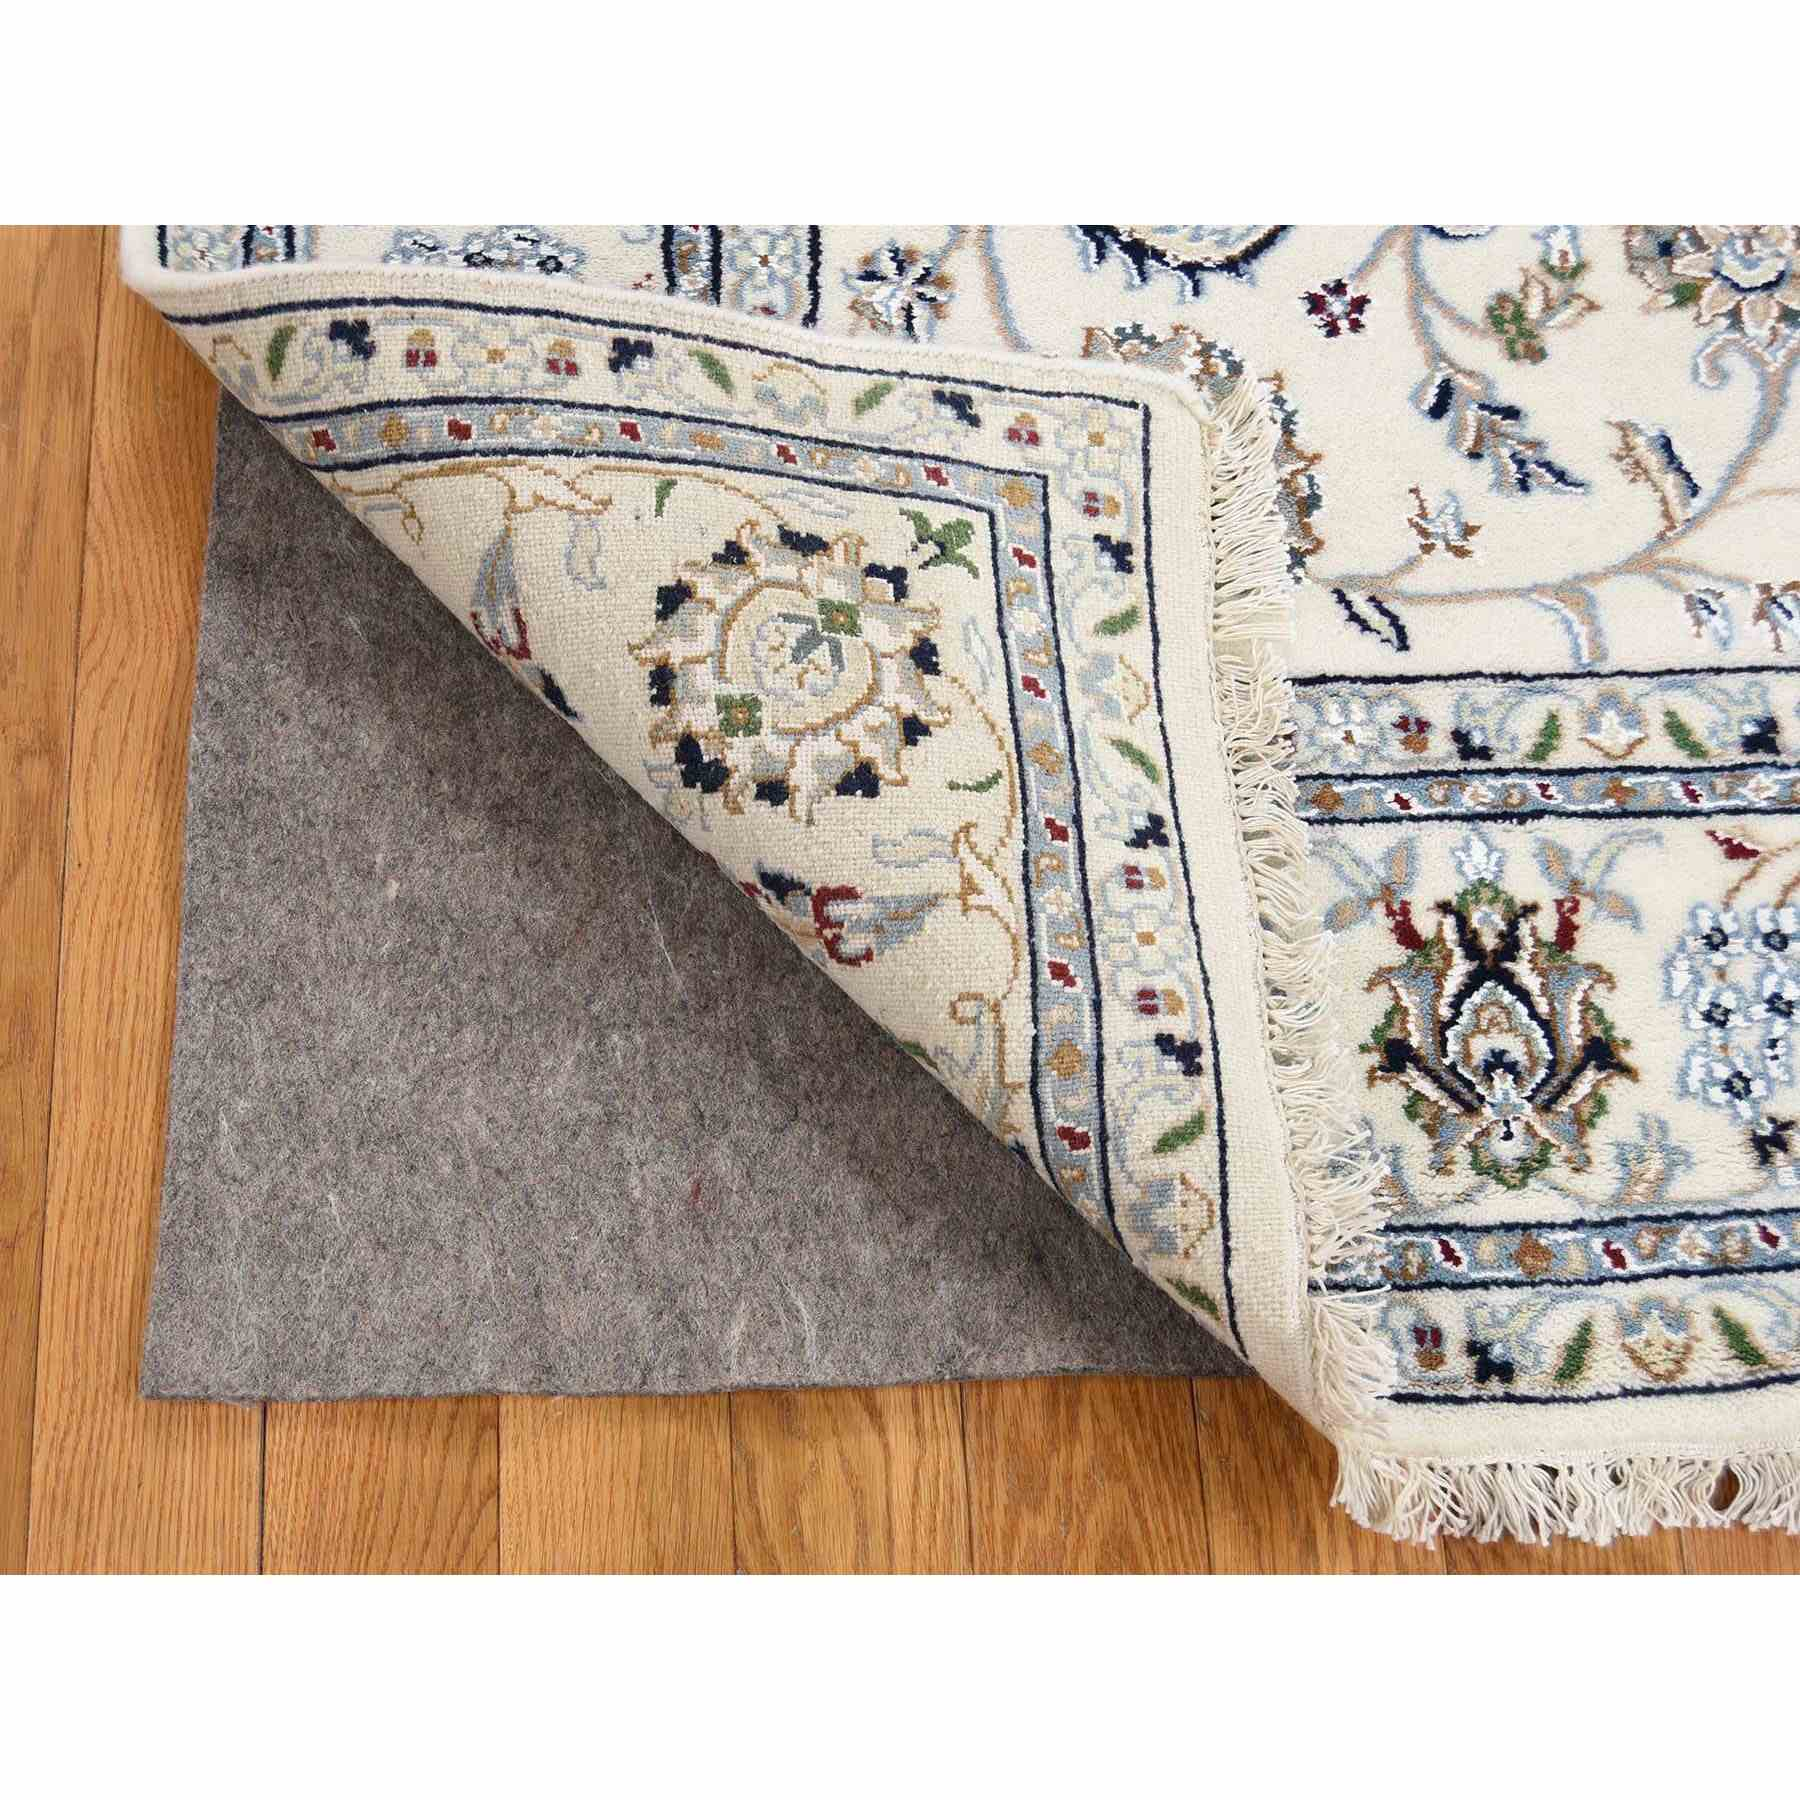 Fine-Oriental-Hand-Knotted-Rug-244000